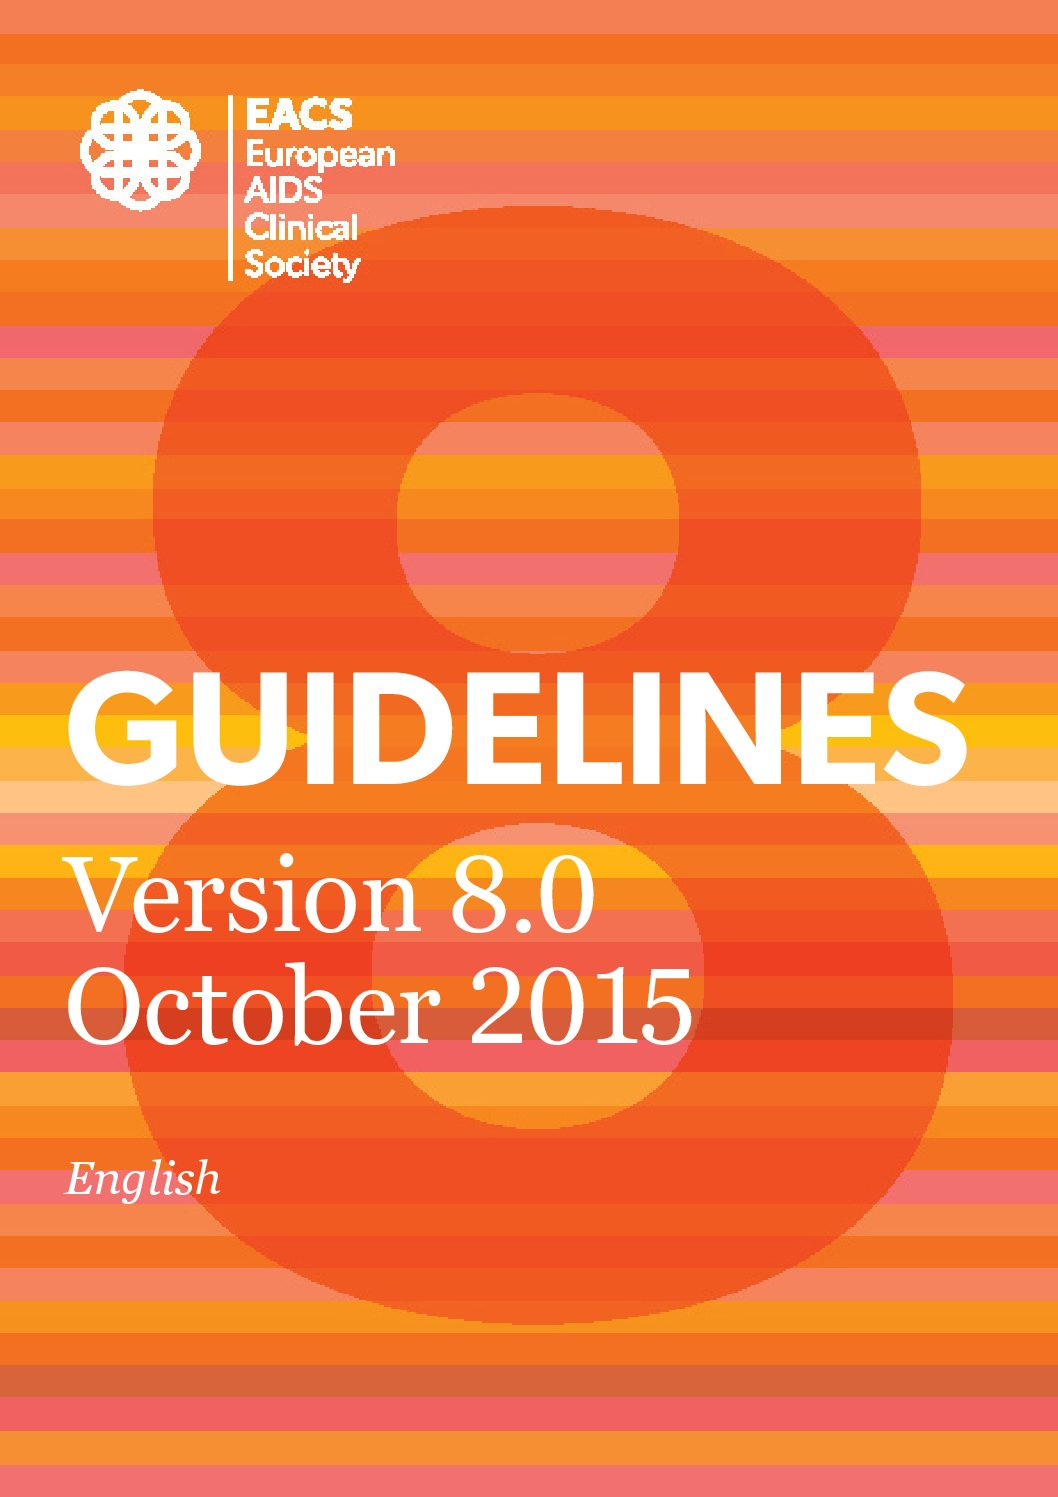 Eacs guidelines version 8.0 october 2015.